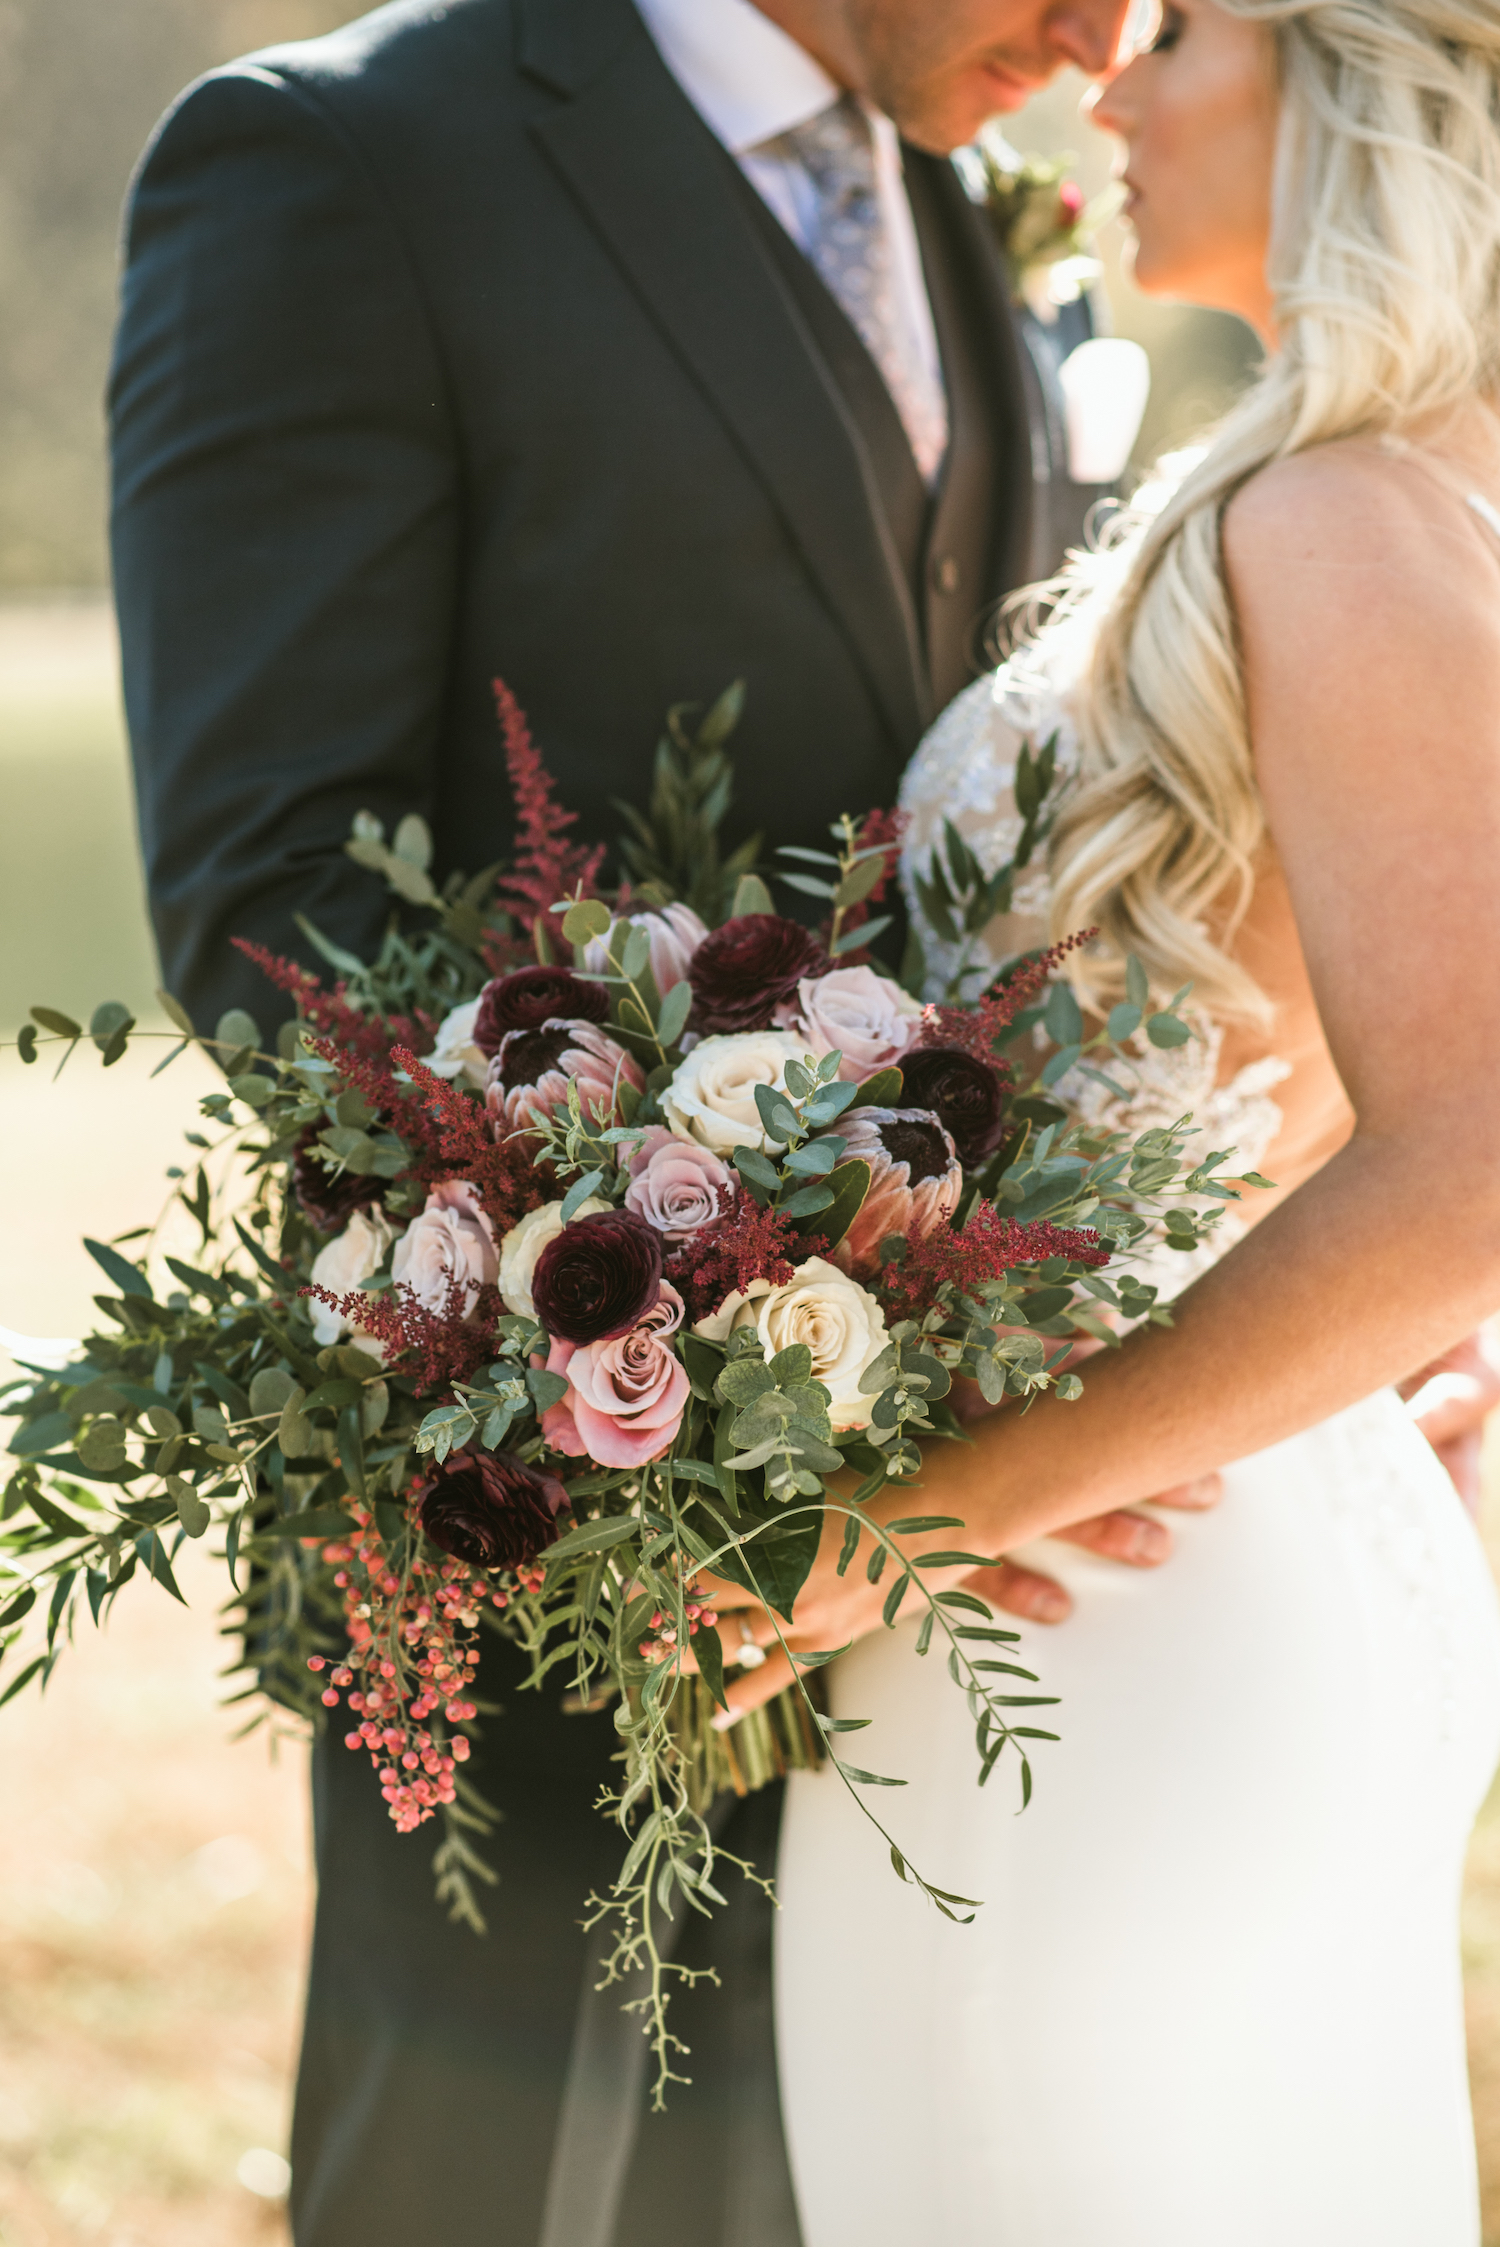 Burgundy and White Wedding Bouquet: Upscale Marble Graystone Quarry Wedding featured on Nashville Bride Guide